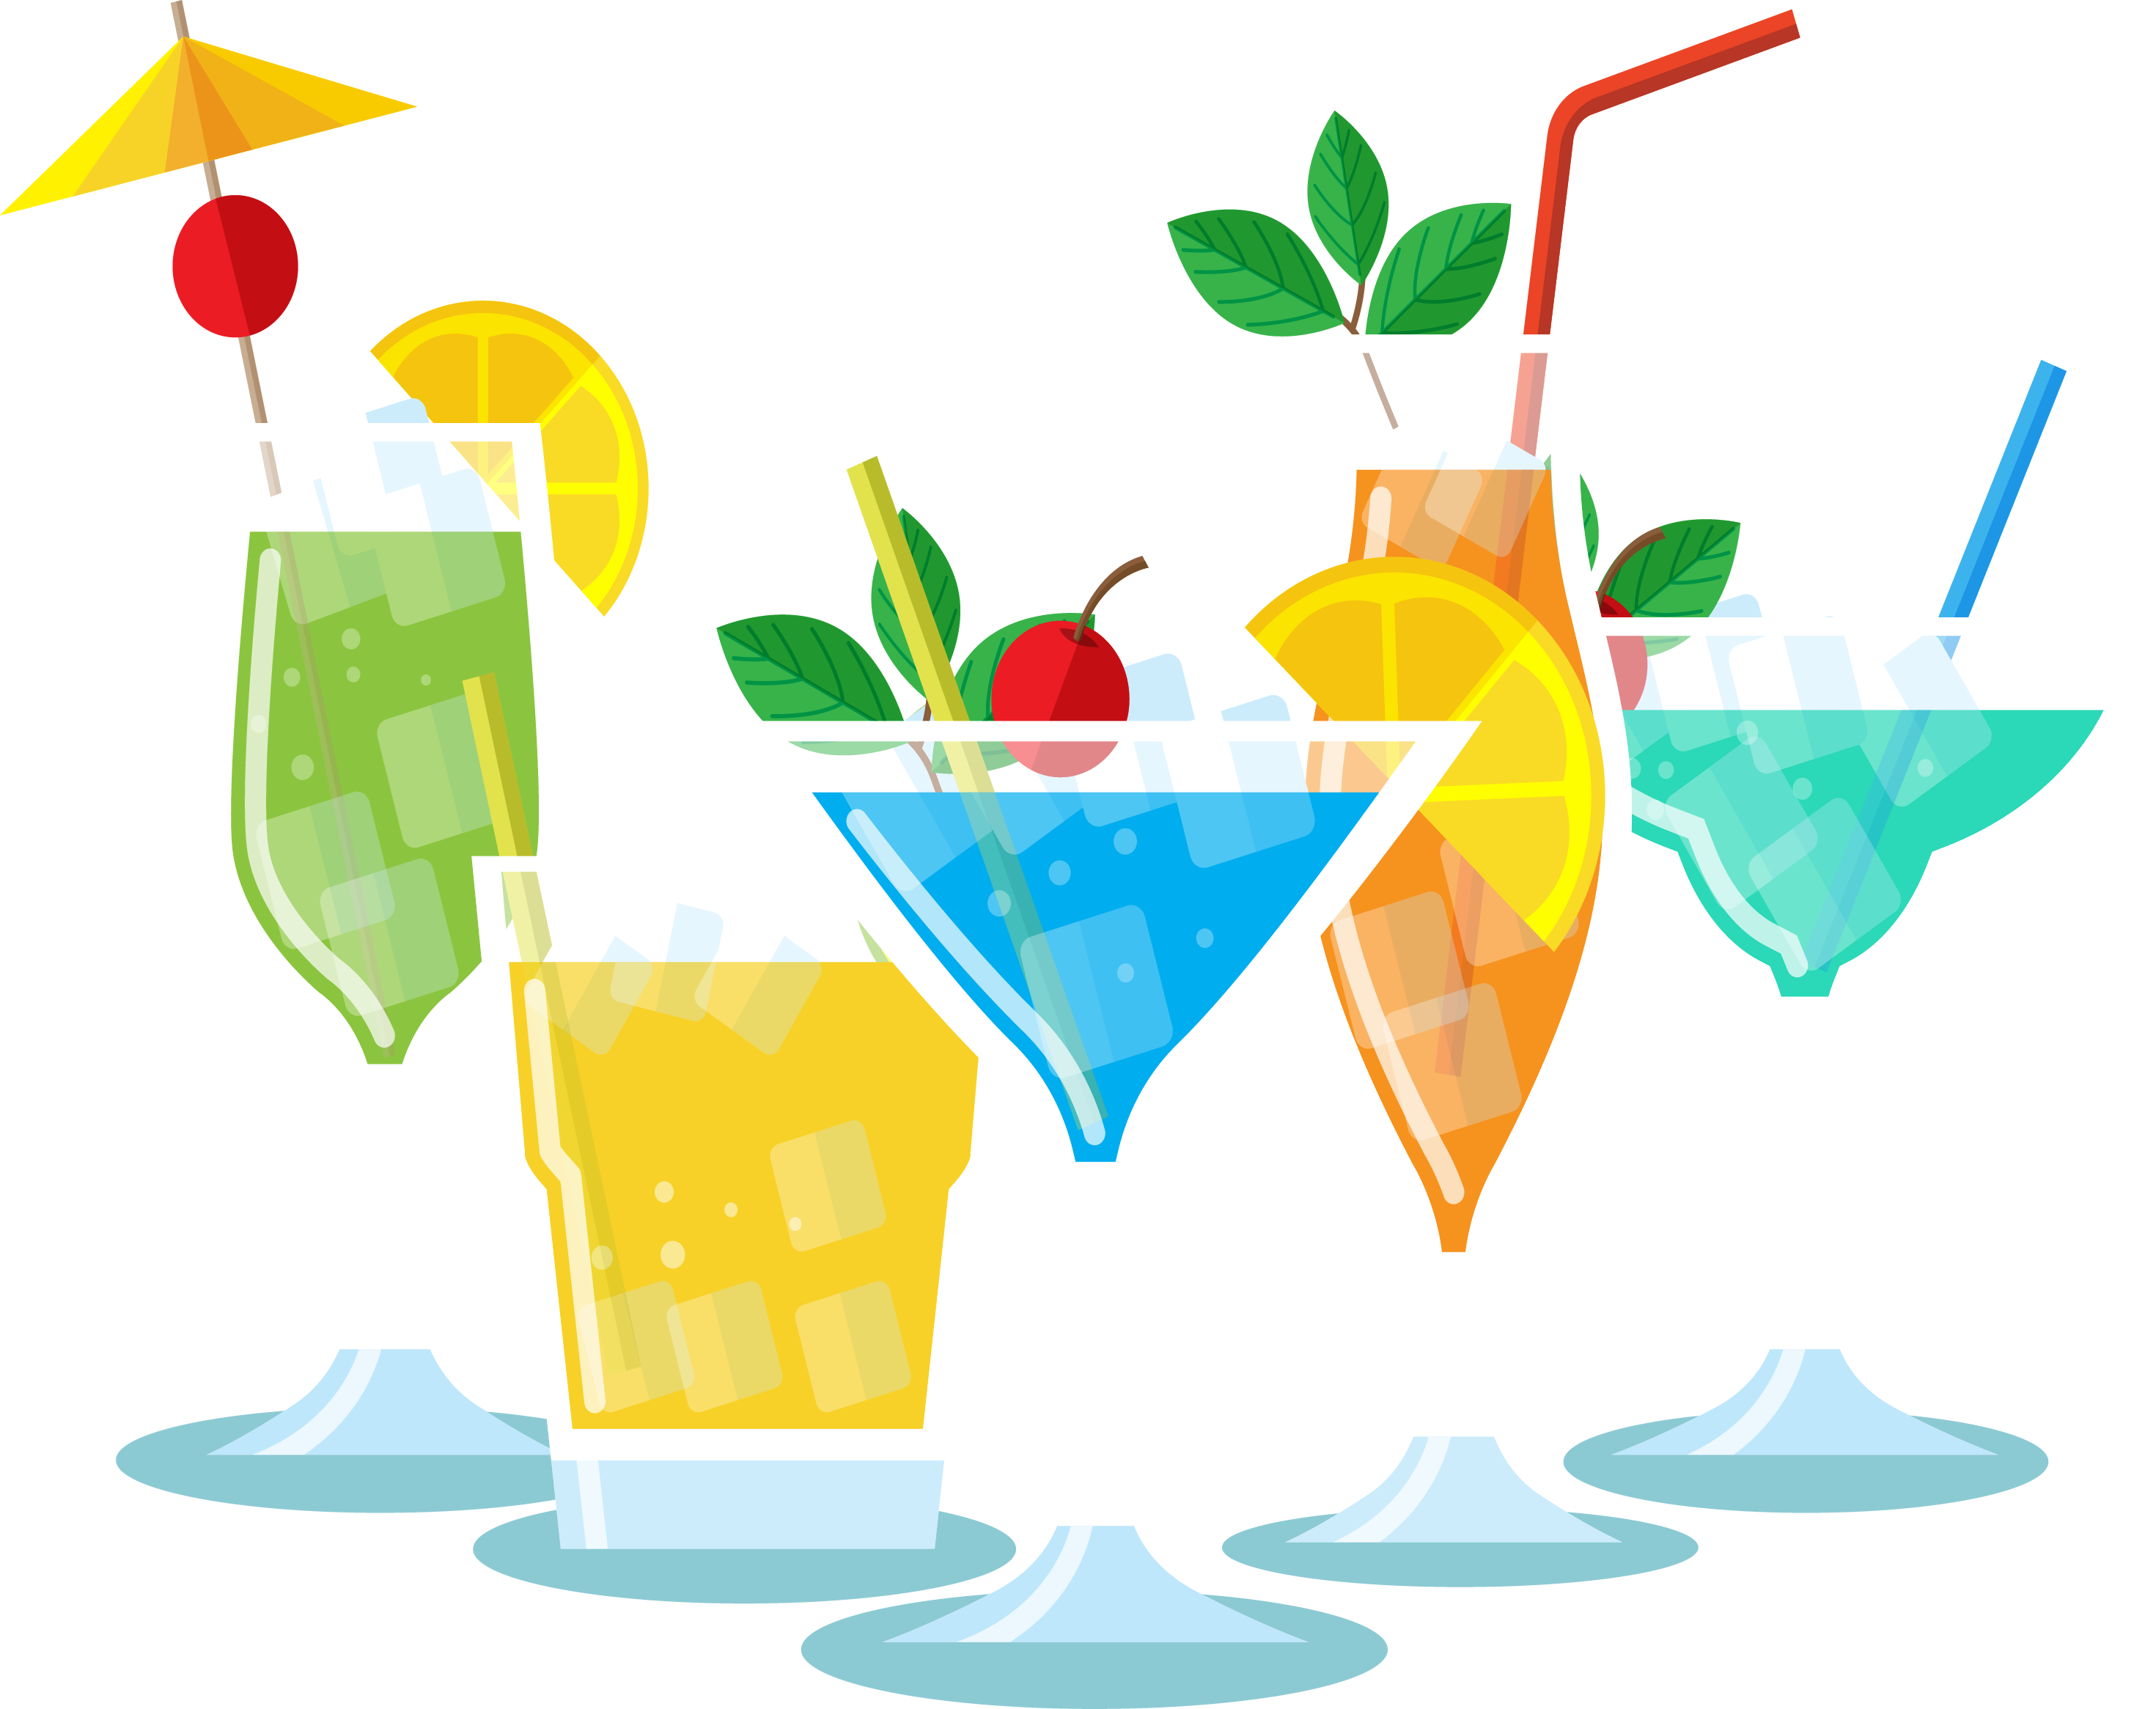 Party clipart cocktail party, Party cocktail party Transparent FREE.